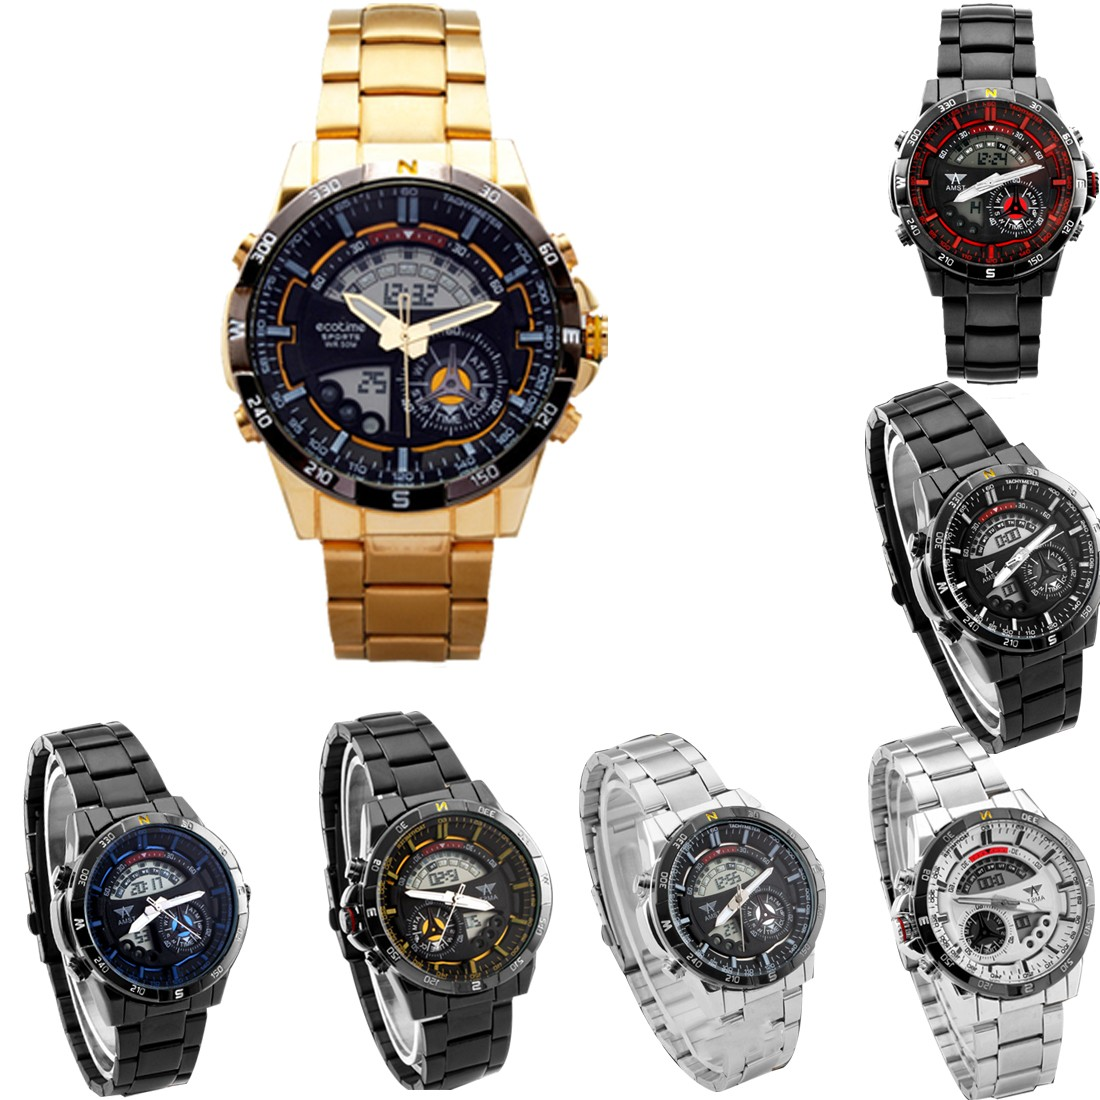 Men Outdoor Sport Watches Waterproof Dual Multifunctional Digital Display Wristwatch Fashion Design Practical